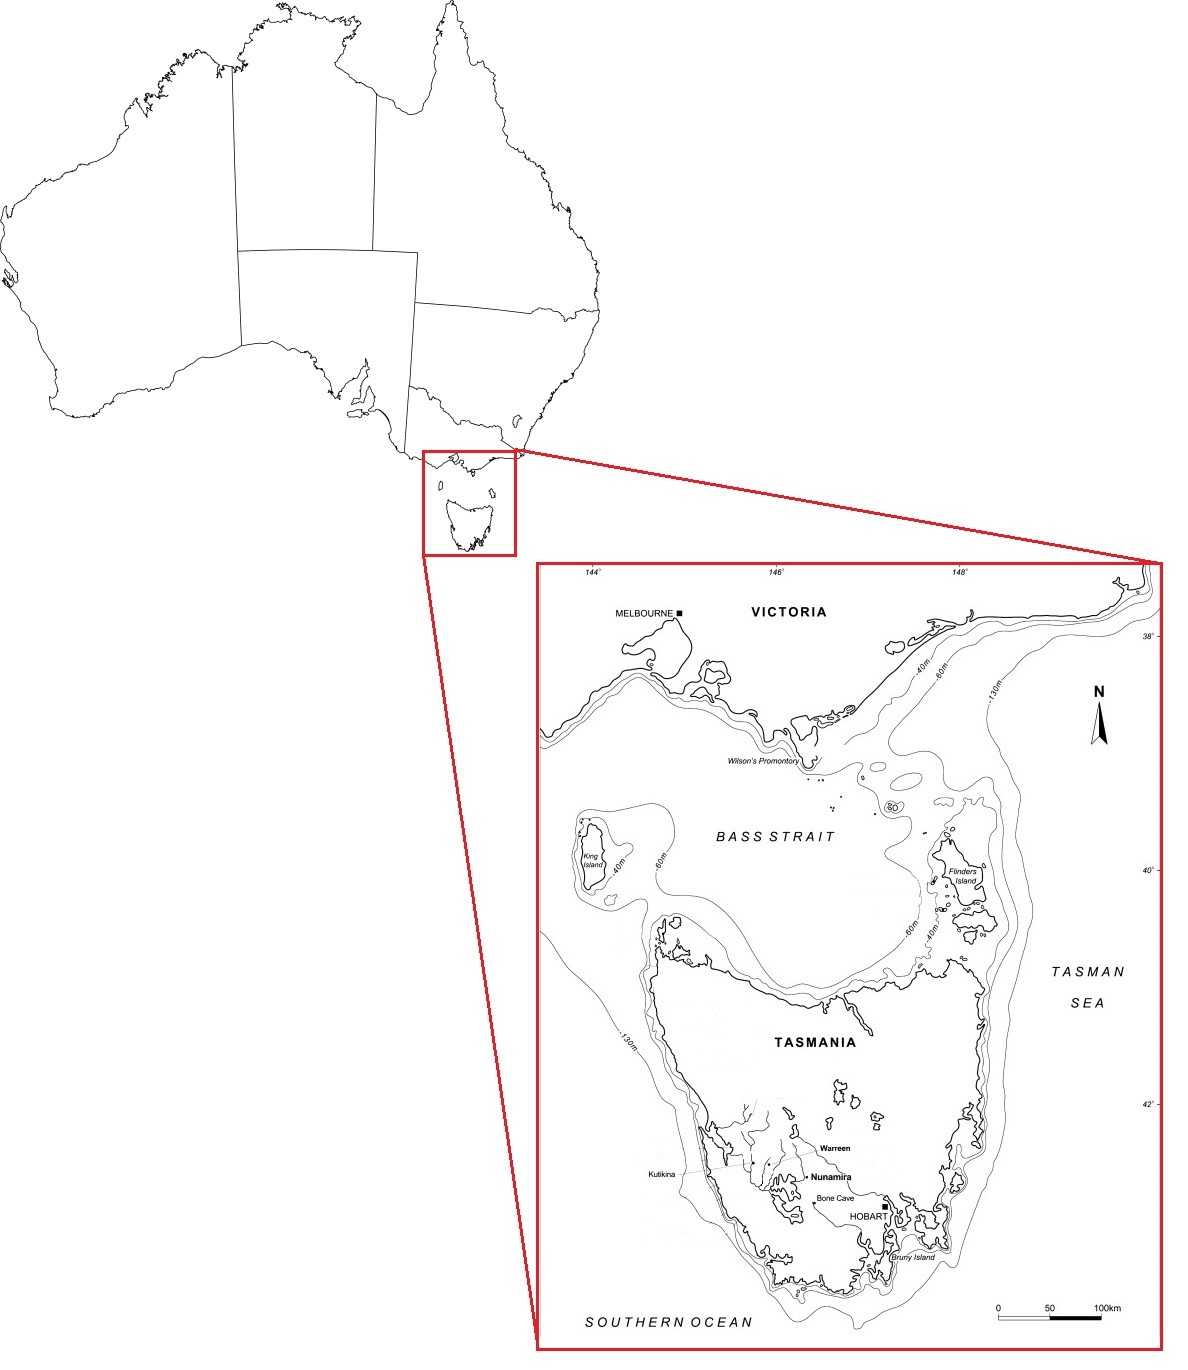 Related archaeological sites in southwestern Tasmania. Adapted from Cosgrove et al. 2010.